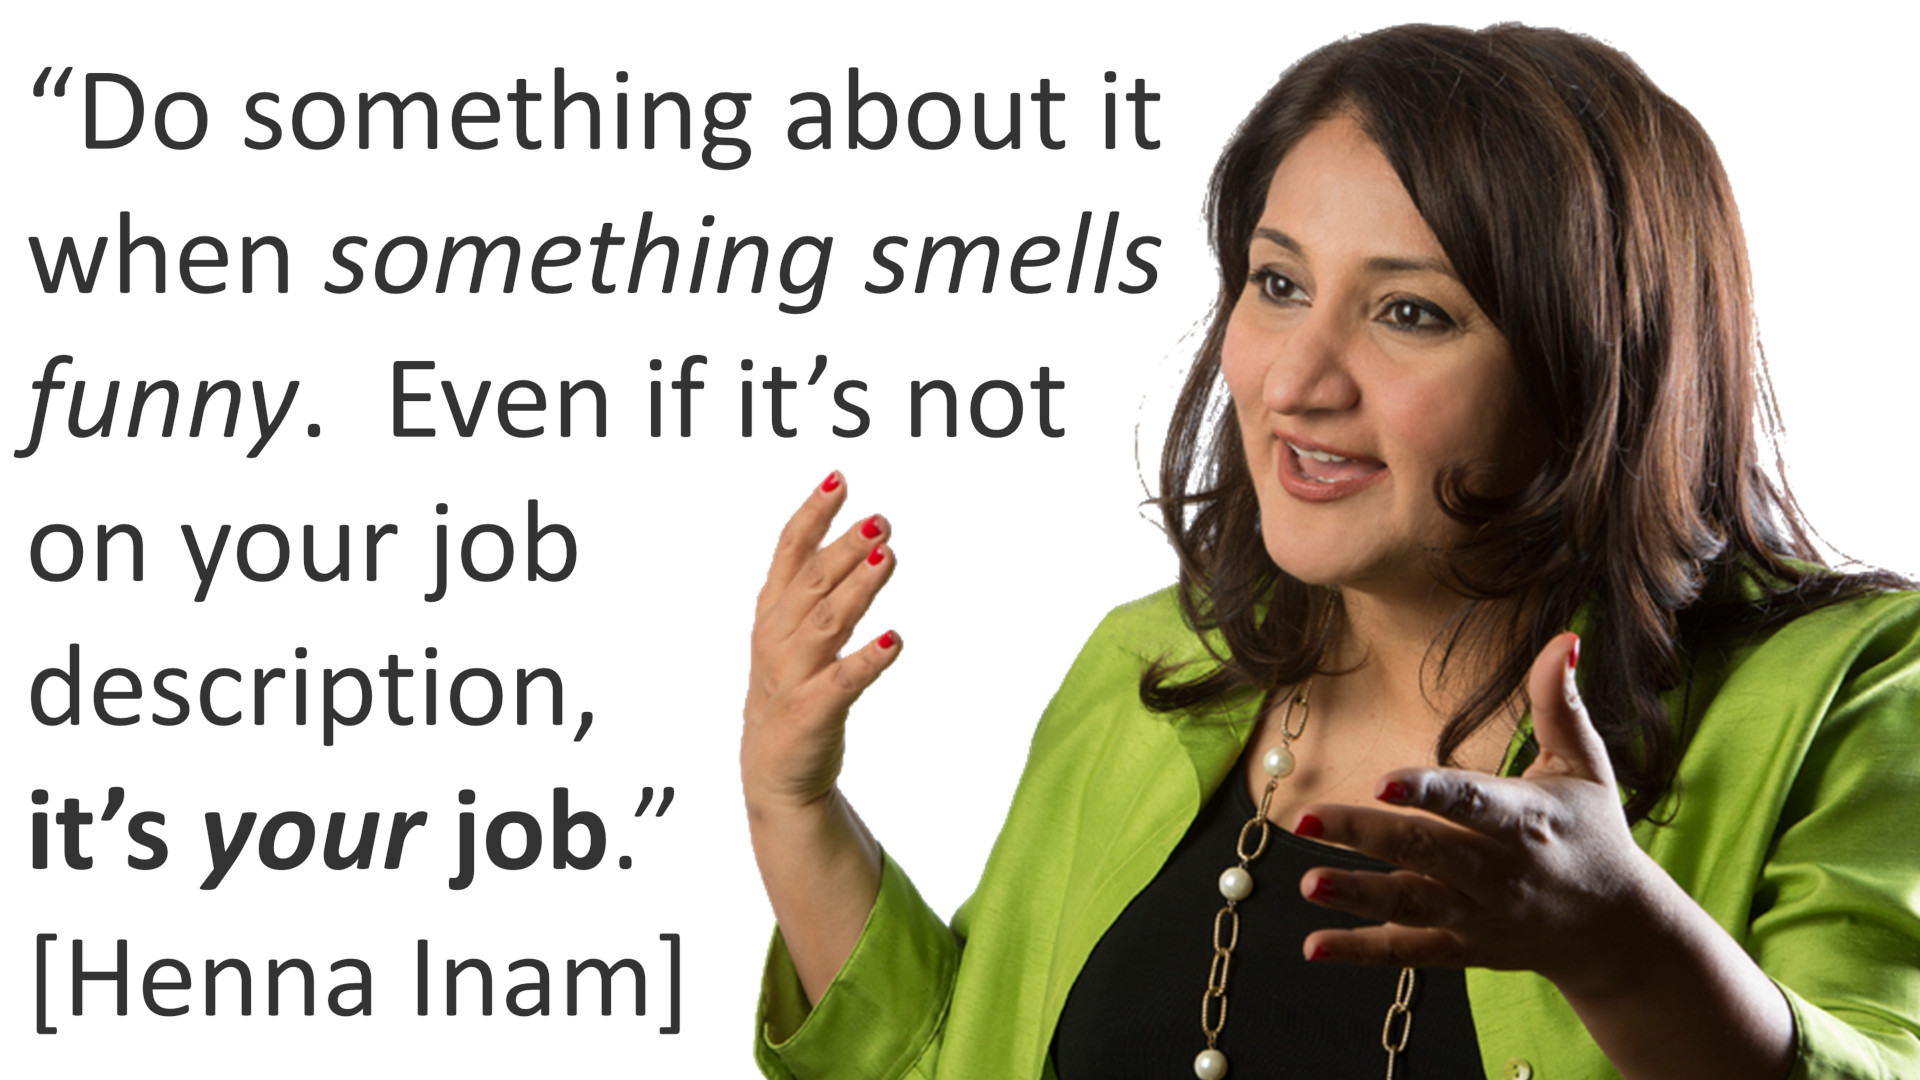 Quote by Henna Inam: Do something about it when something smells funny. Even if it's not on your job description, it's your job.